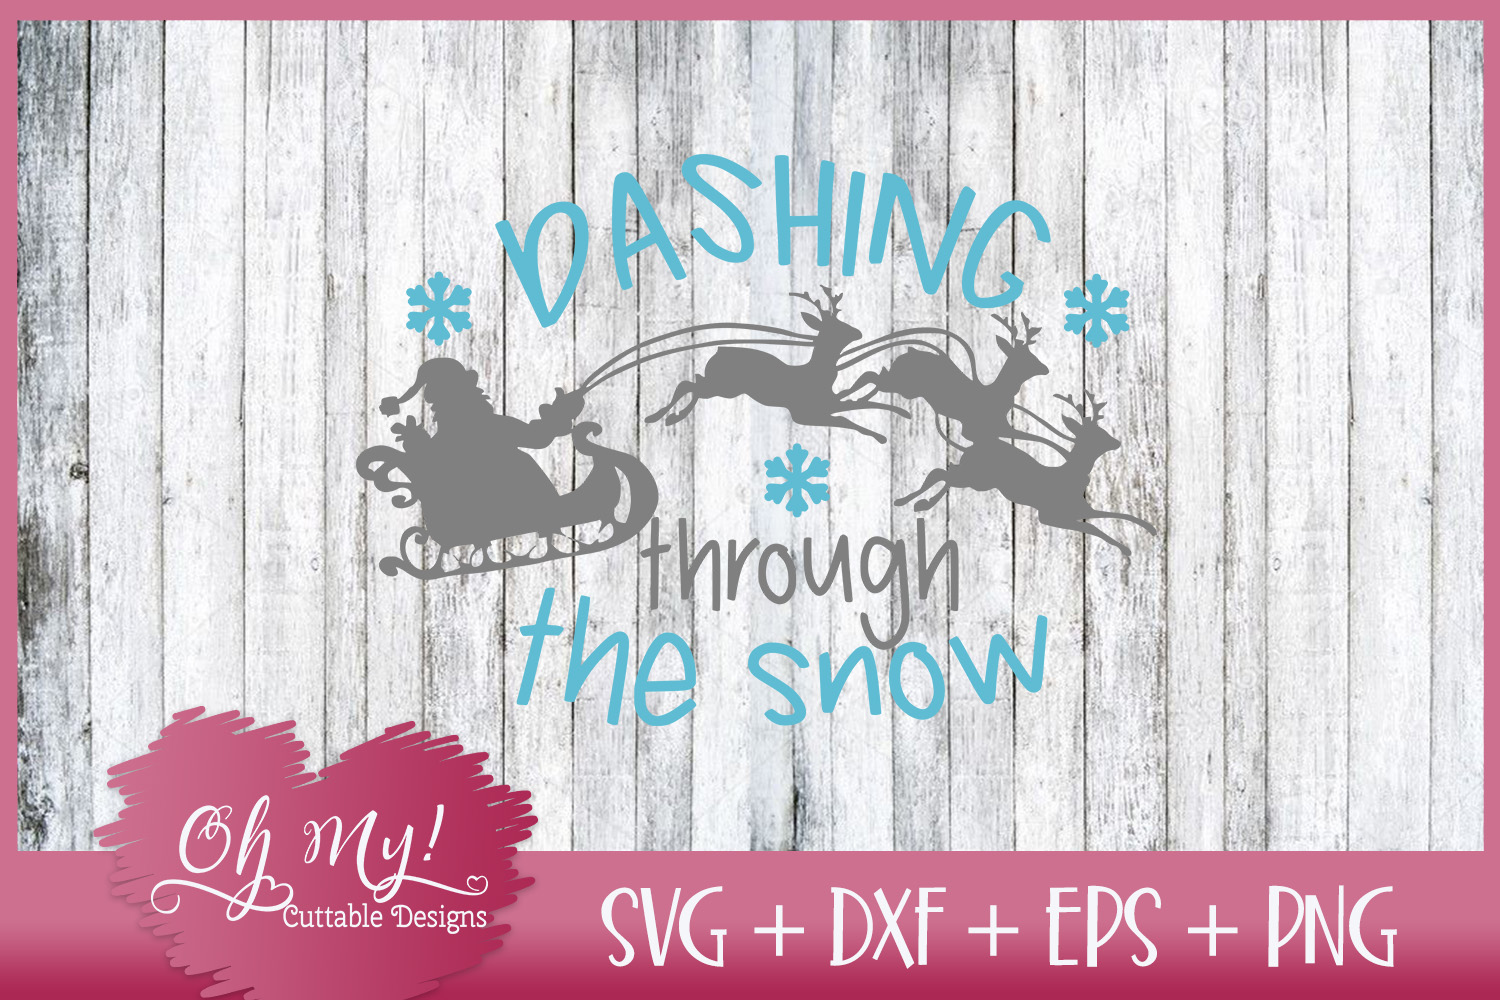 Dashing Through The Snow - SVG EPS DXF Cutting File example image 5